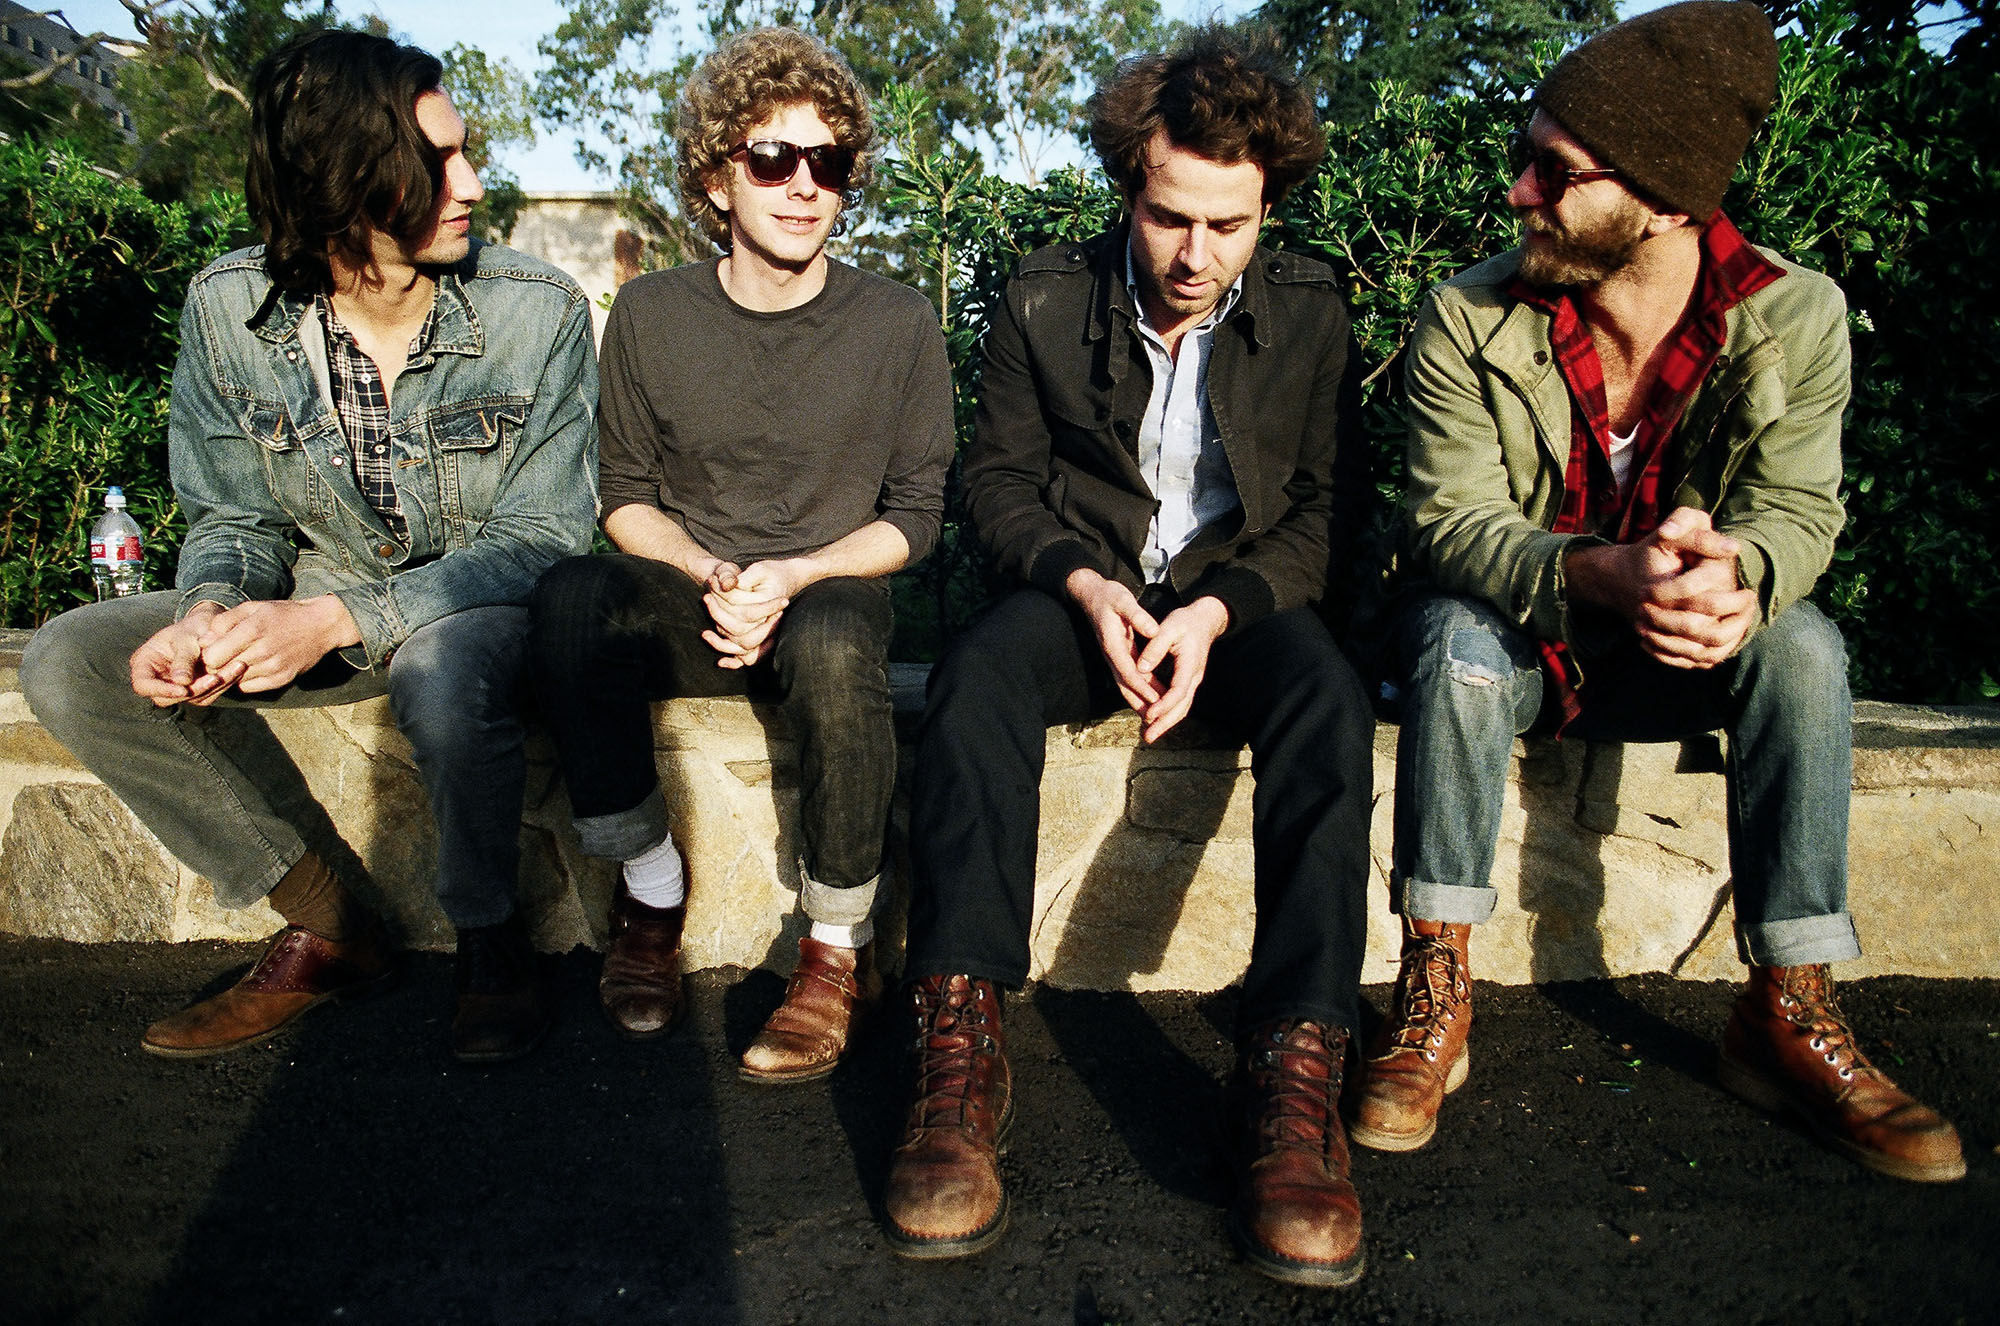 ACM@UCO will host a master class with Dawes, American folk-rock band, at 12 p.m., Oct. 4 at the ACM@UCO Performance Lab located in downtown Oklahoma City.